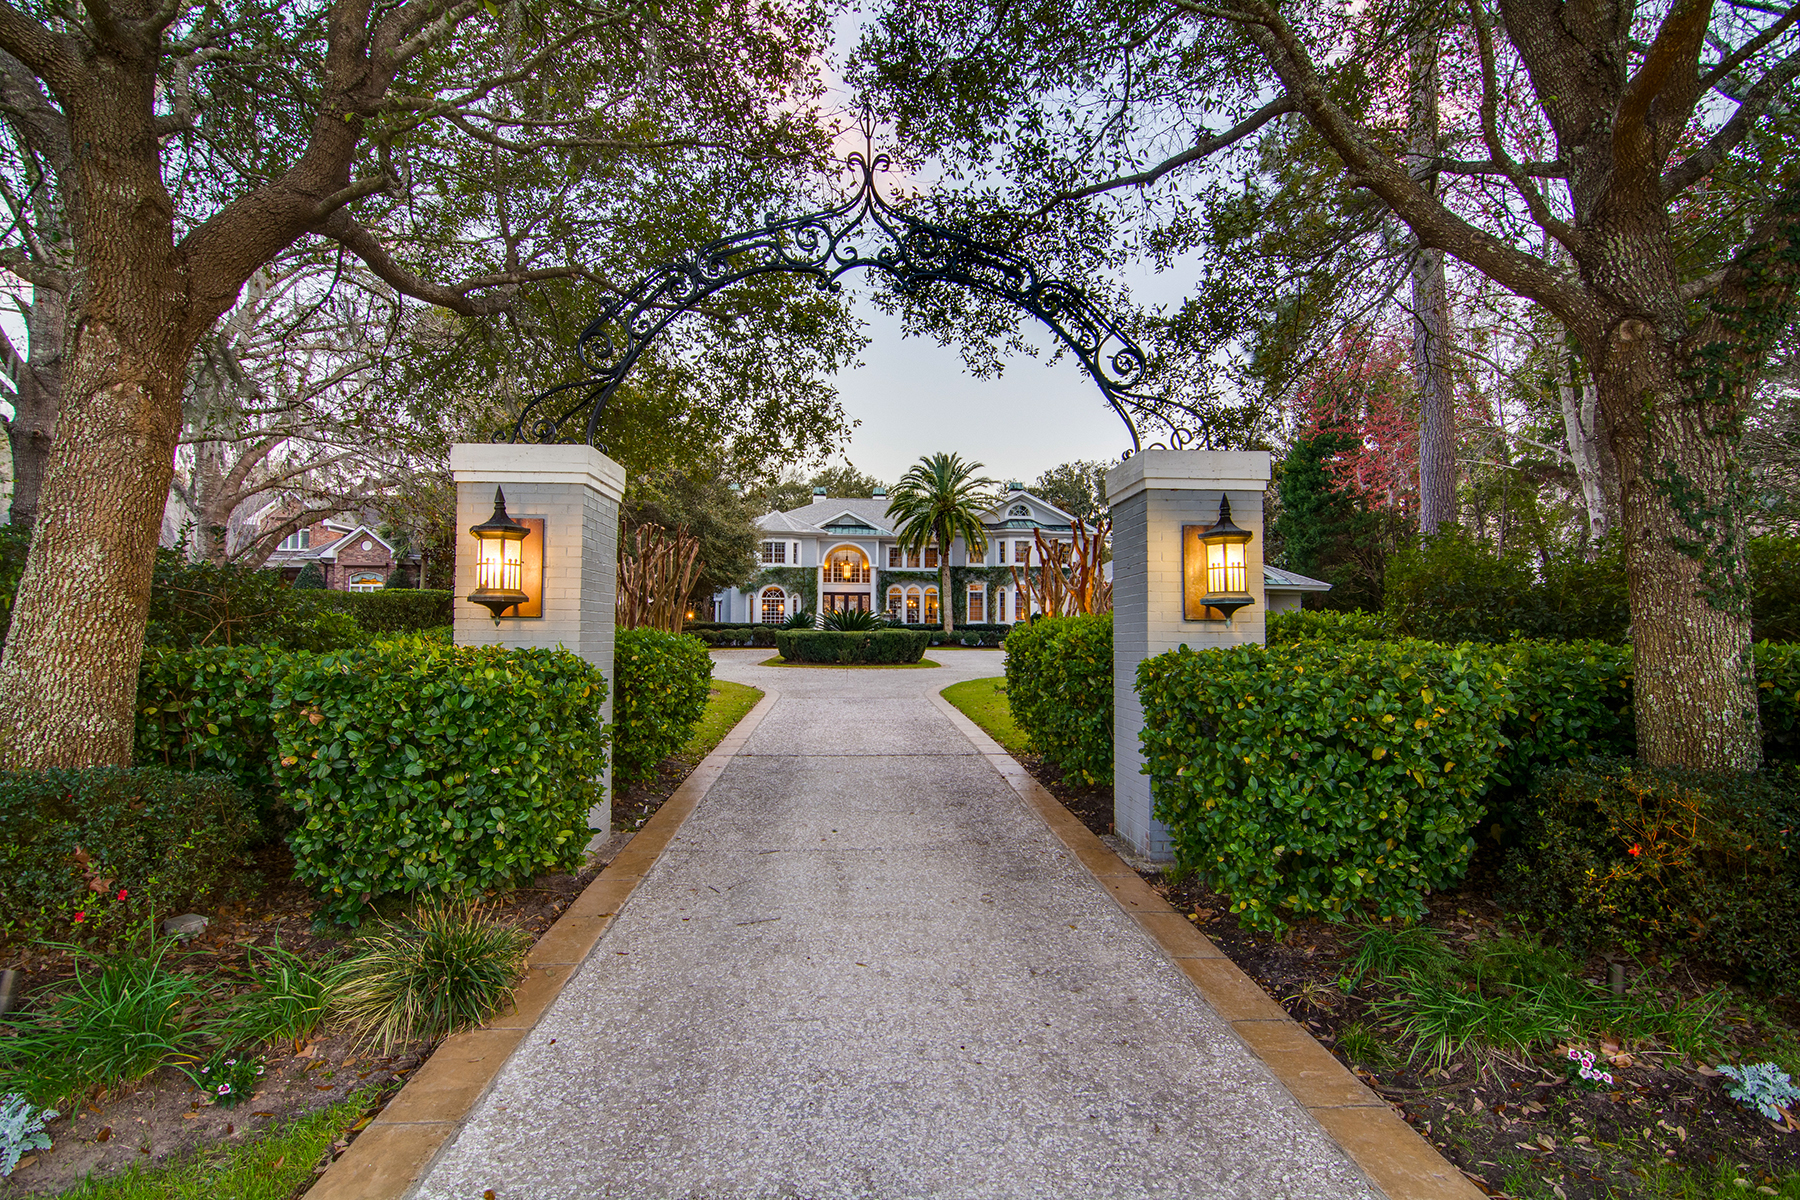 Single Family Home for Sale at 5031 Old York Course Hollywood, South Carolina, 29449 United States